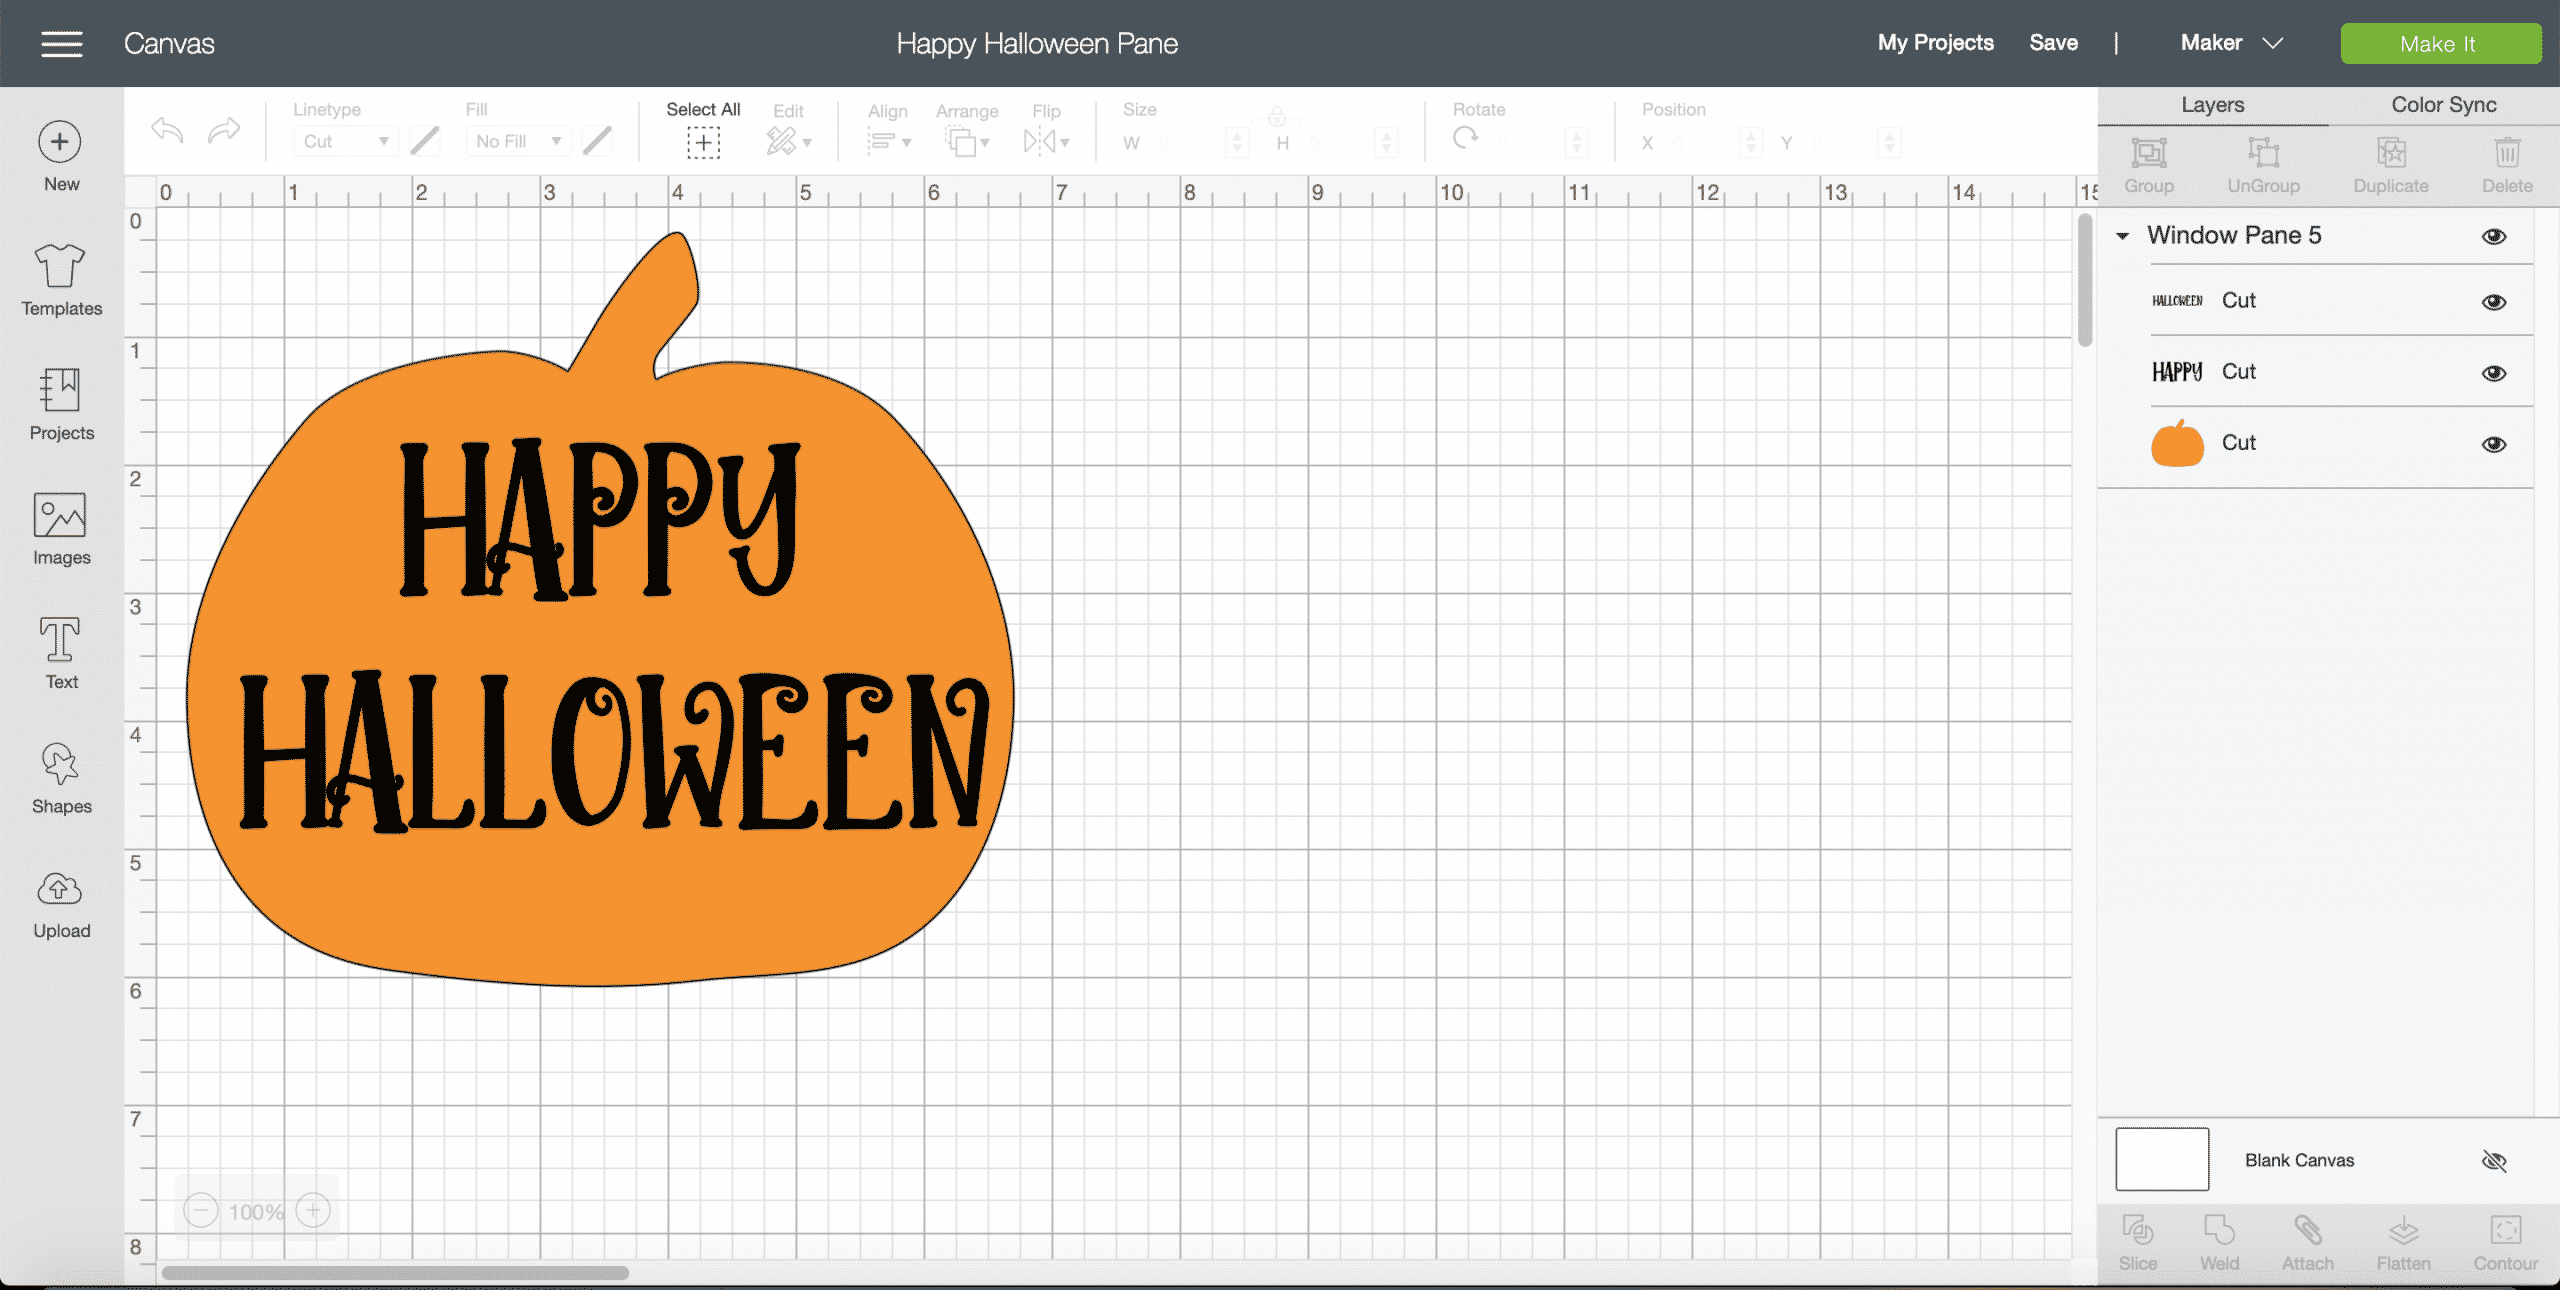 Cricut Design Space Happy Halloween Pane